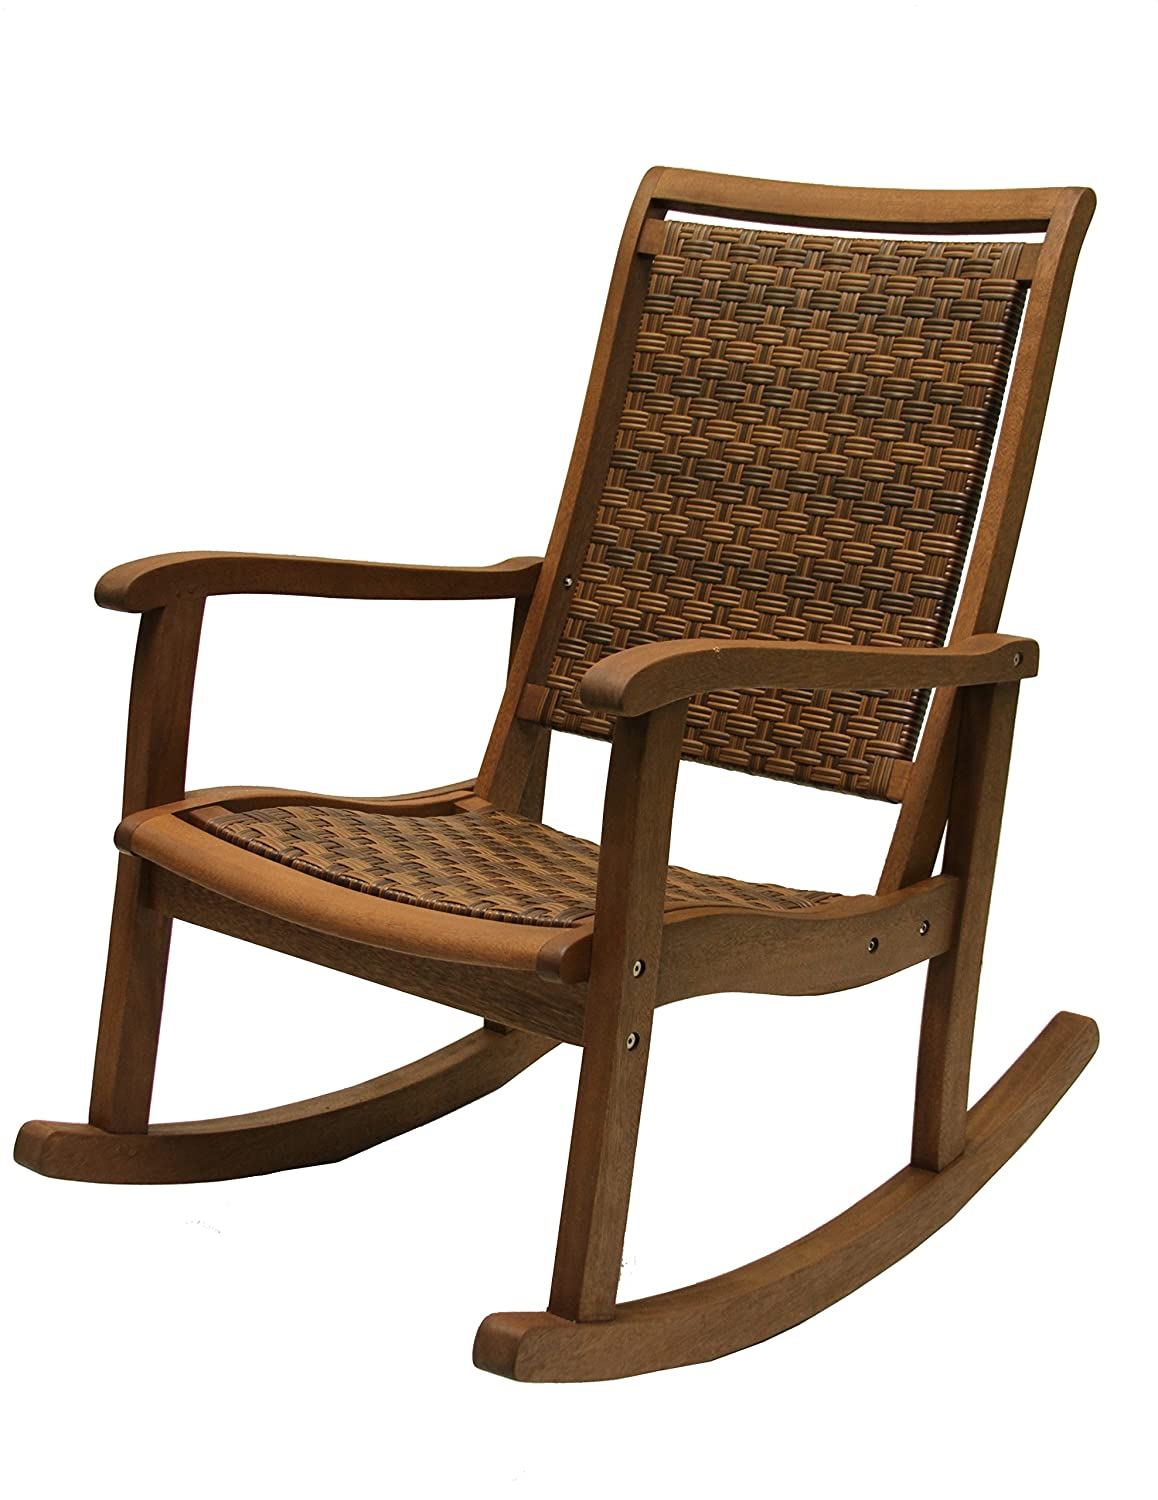 Set of 4 folding wood and resin wicker rockers benches amp chairs - Amazon Com Outdoor Interiors 21095rc All Weather Wicker Mocha And Eucalyptus Rocking Chair Patio Rocking Chairs Patio Lawn Garden